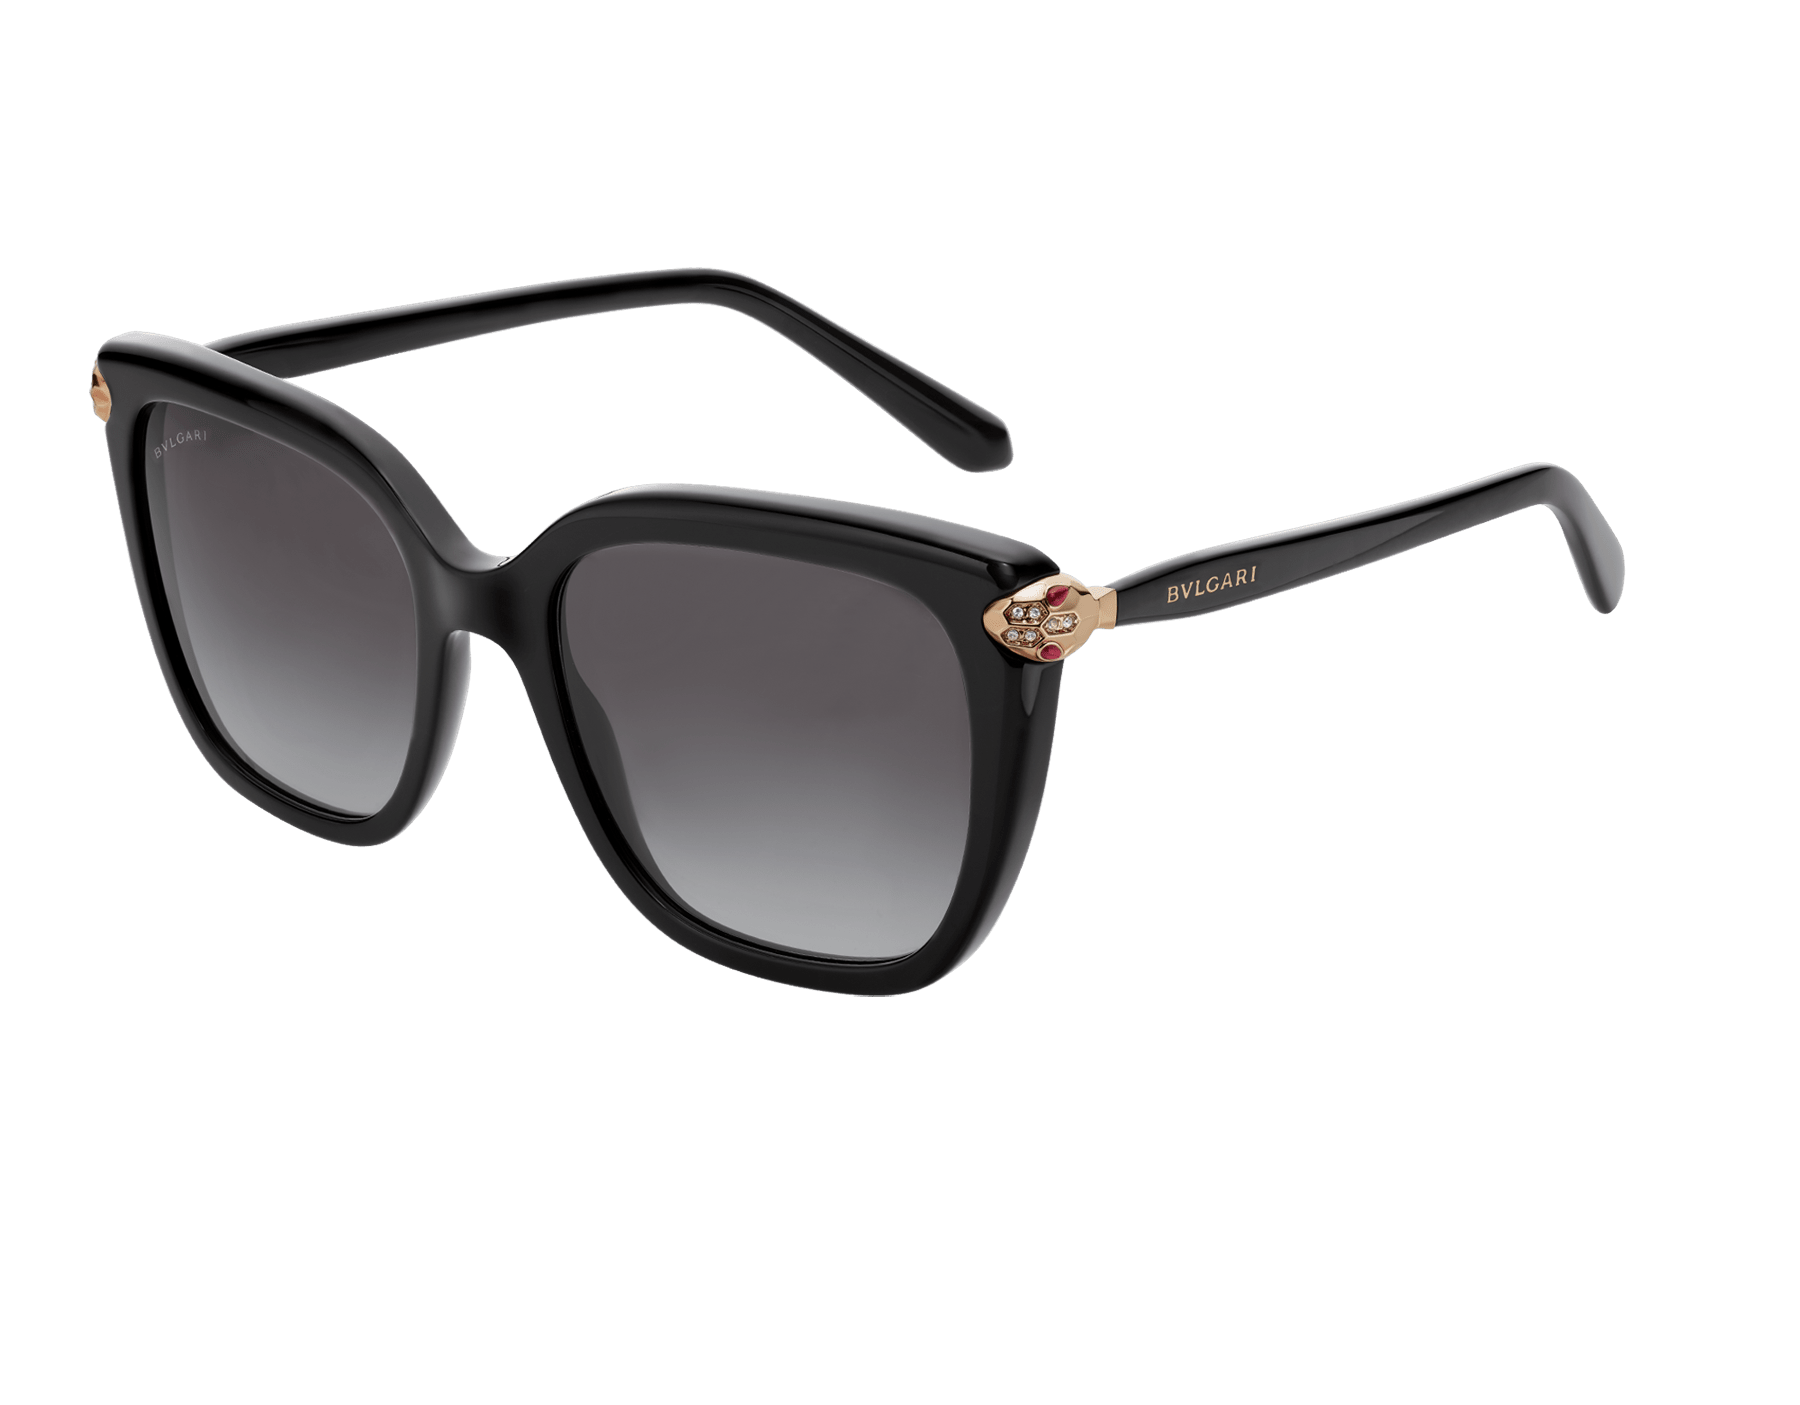 Serpenti squared acetate sunglasses. 903559 image 1